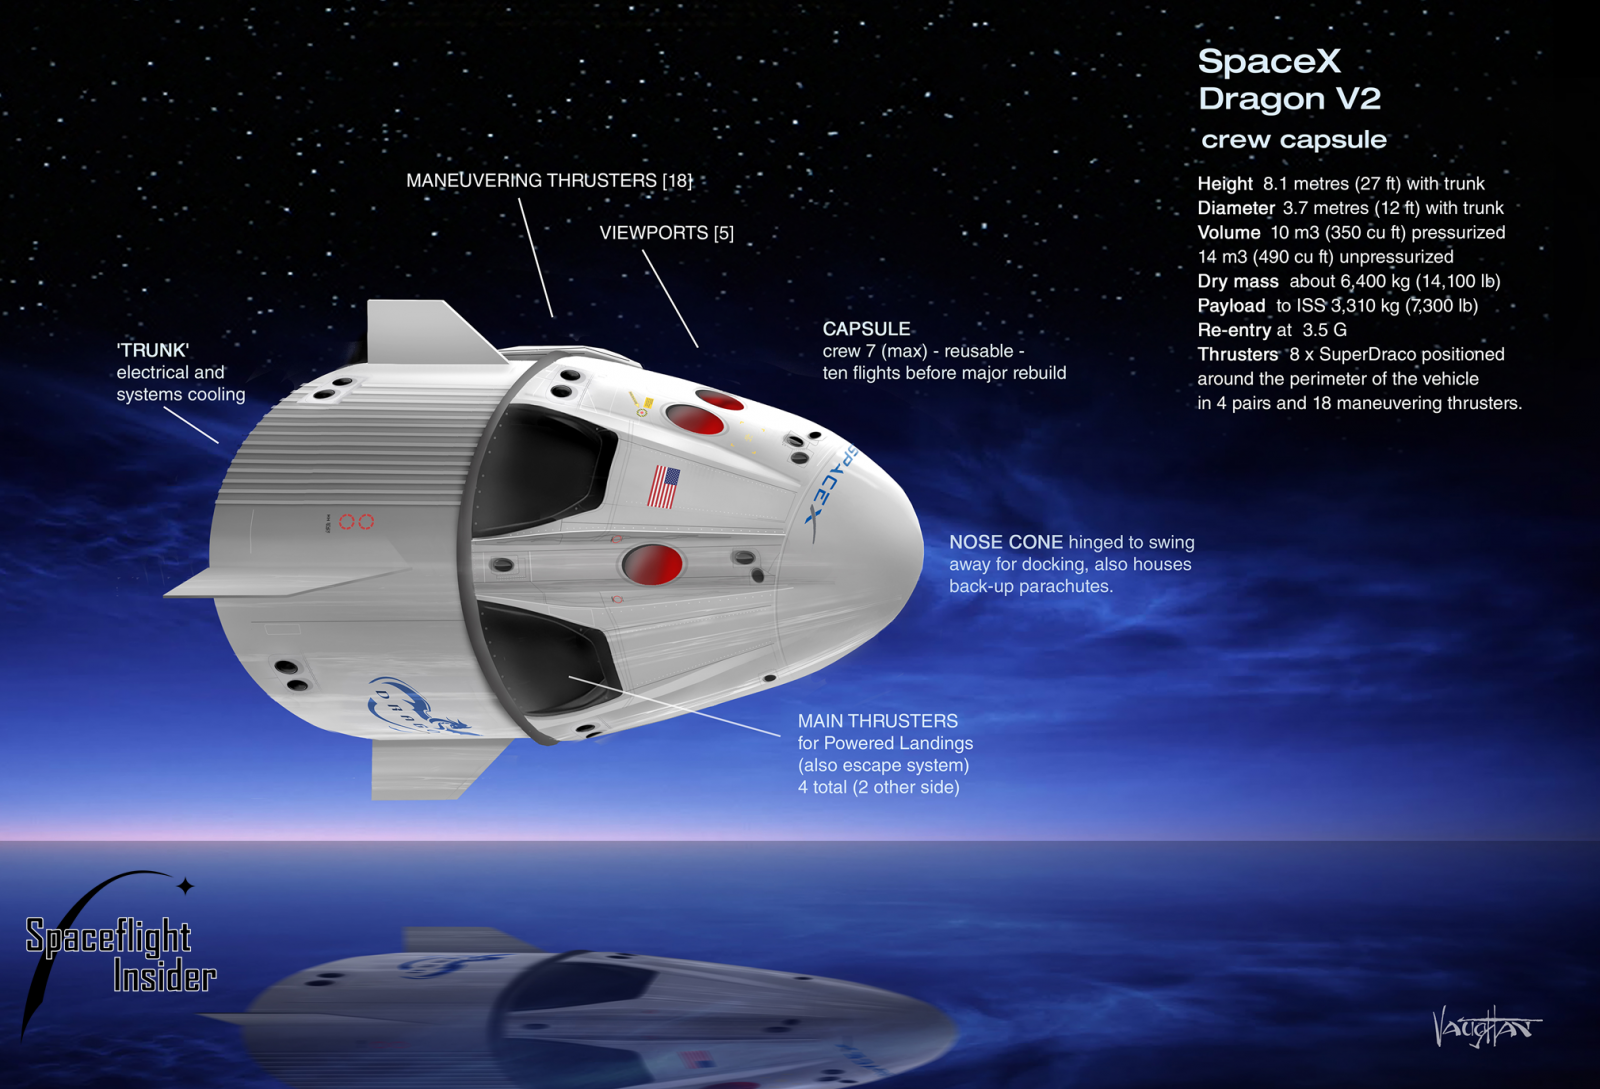 SpaceX Crew Dragon SpaceFlight Insider infographic SpaceXu0027s